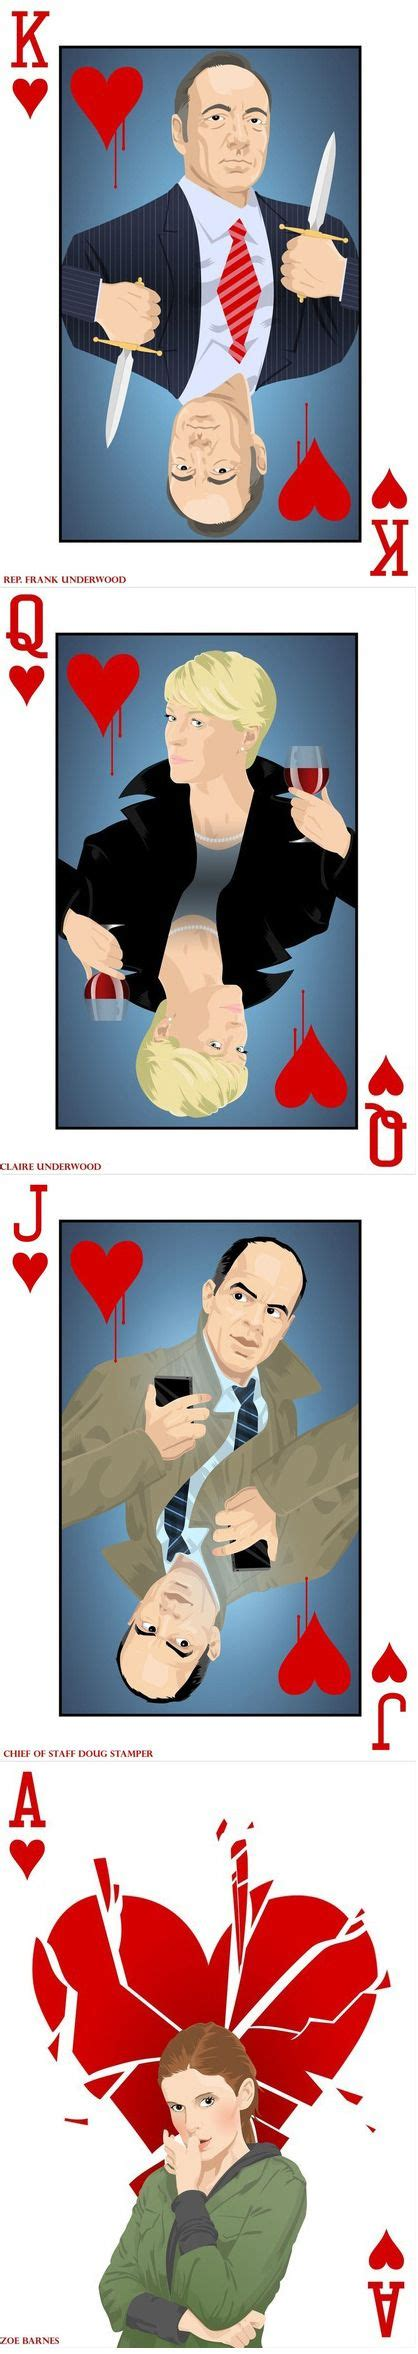 what is house of cards based on stack the deck with house of cards playing cards drama